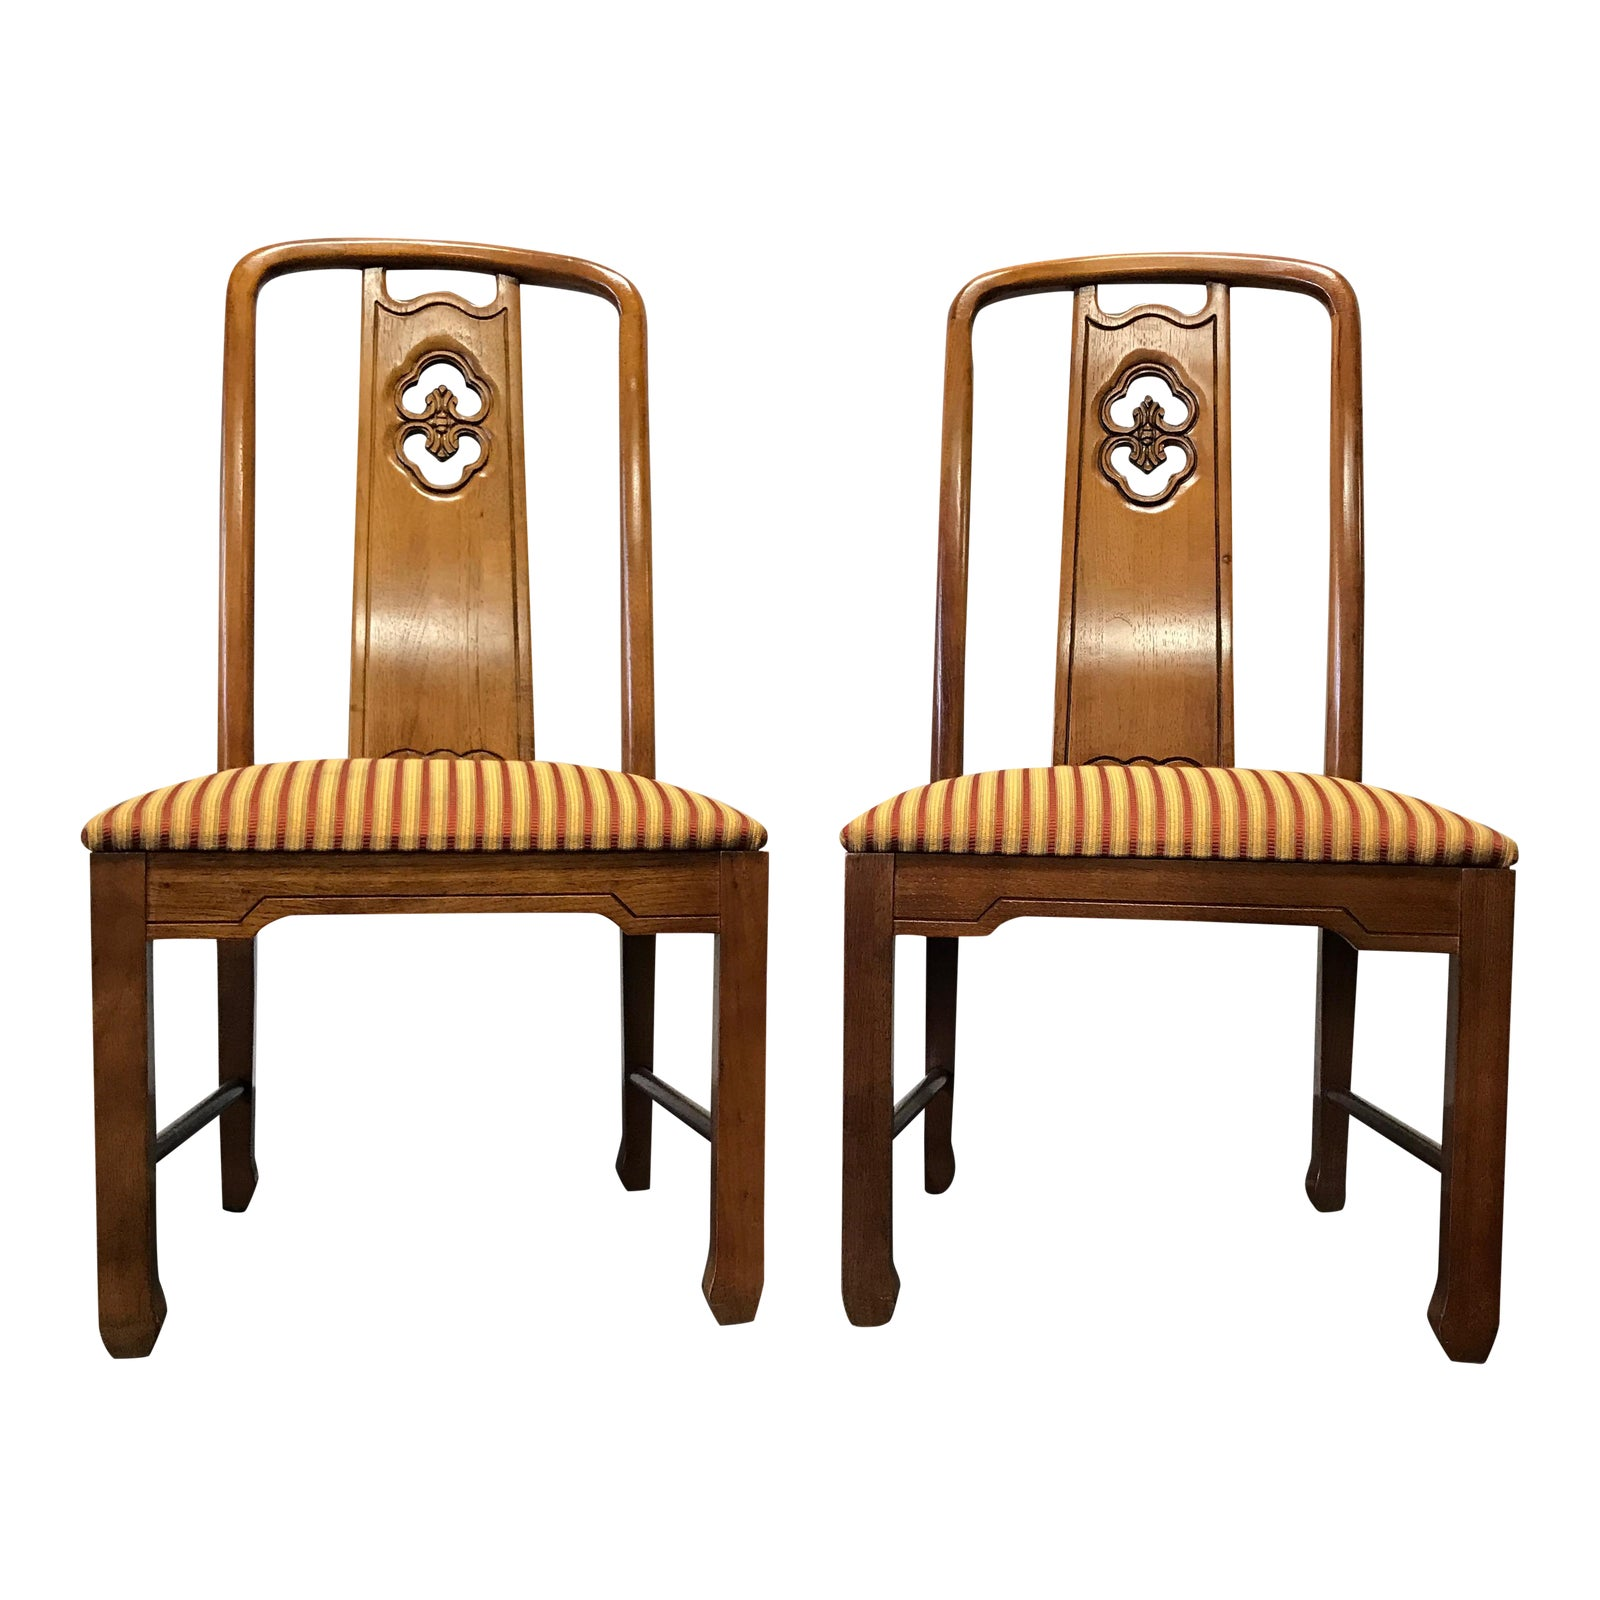 Thomasville Dining Room Furniture: Thomasville Mystique Dining Chairs - A Pair